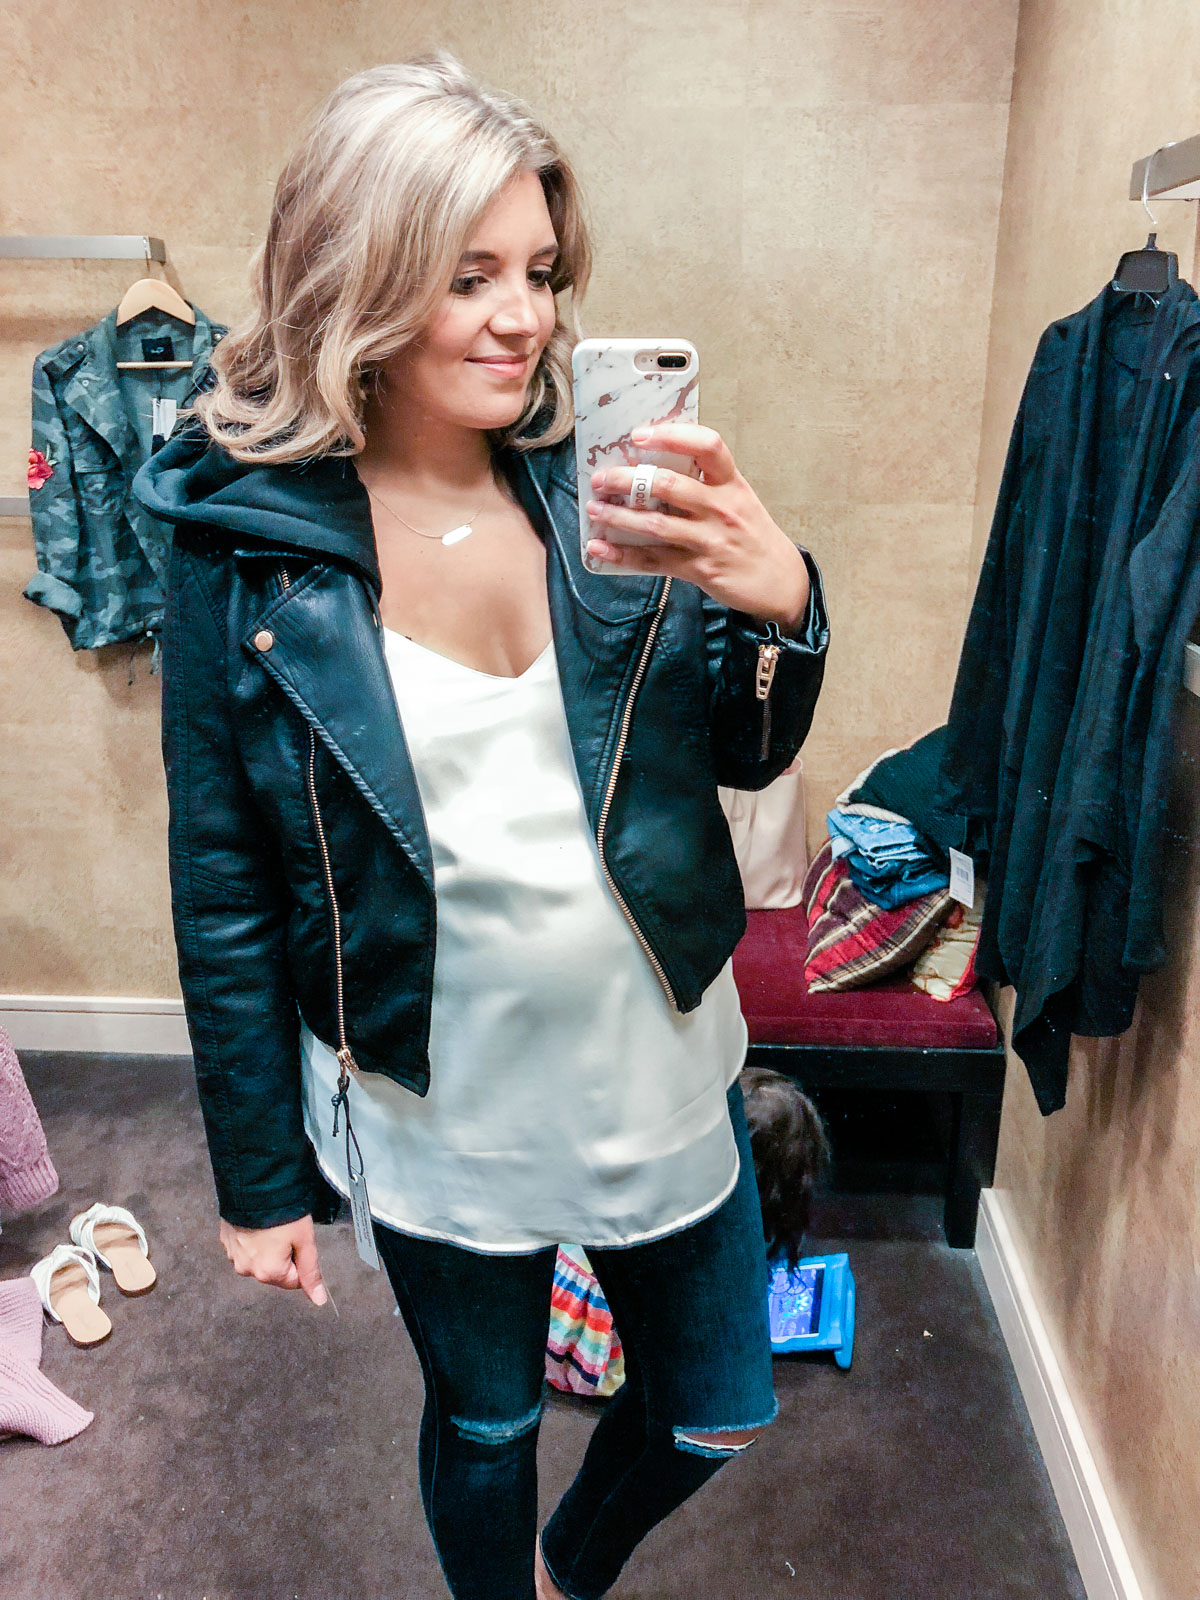 Blanknyc moto jacket - Nordstrom anniversary sale 2018 try-on session: over 25 items reviewed for fit and size! | bylaurenm.com